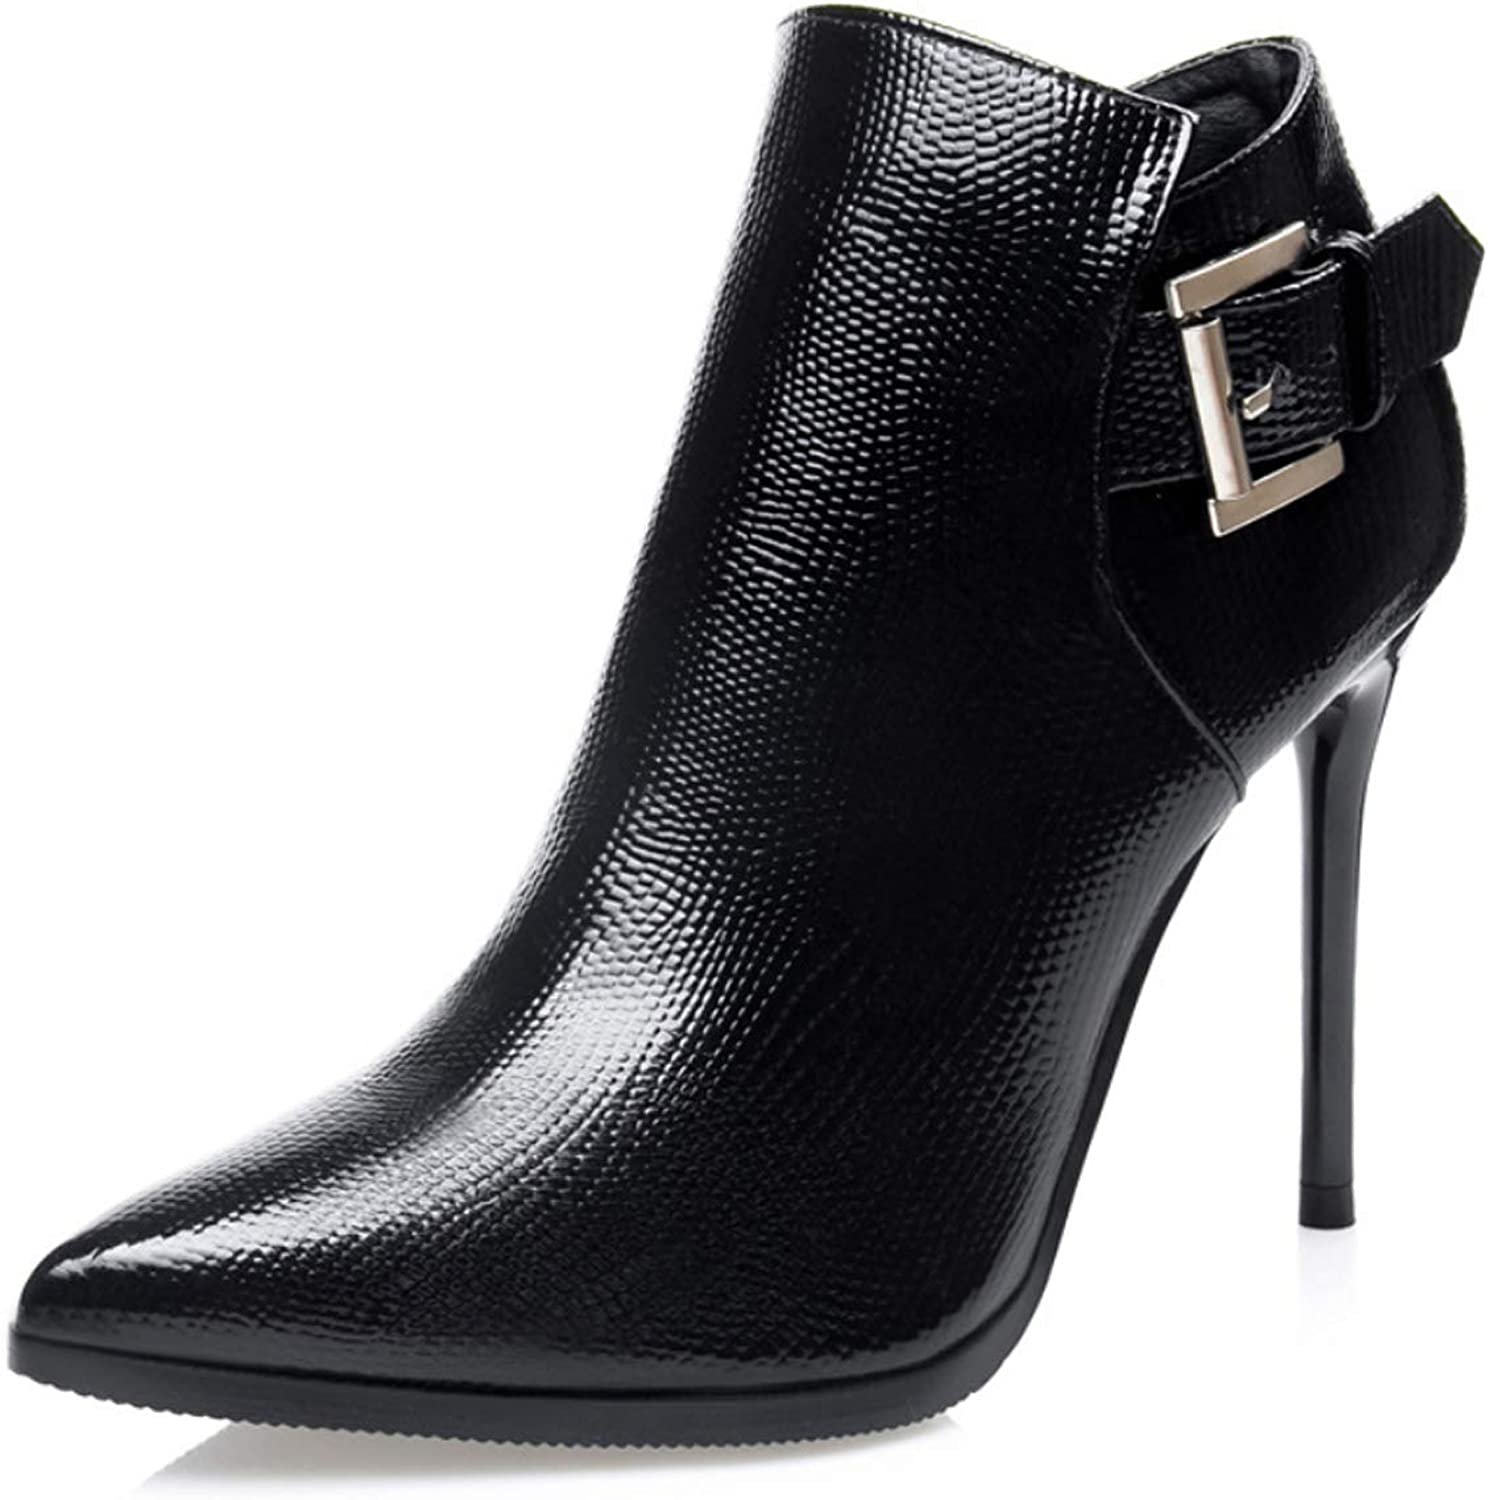 Womens Ankle Boots with Buckle Stiletto Heel shoes Sexy Pointed Toe Booties for Winter Night Club